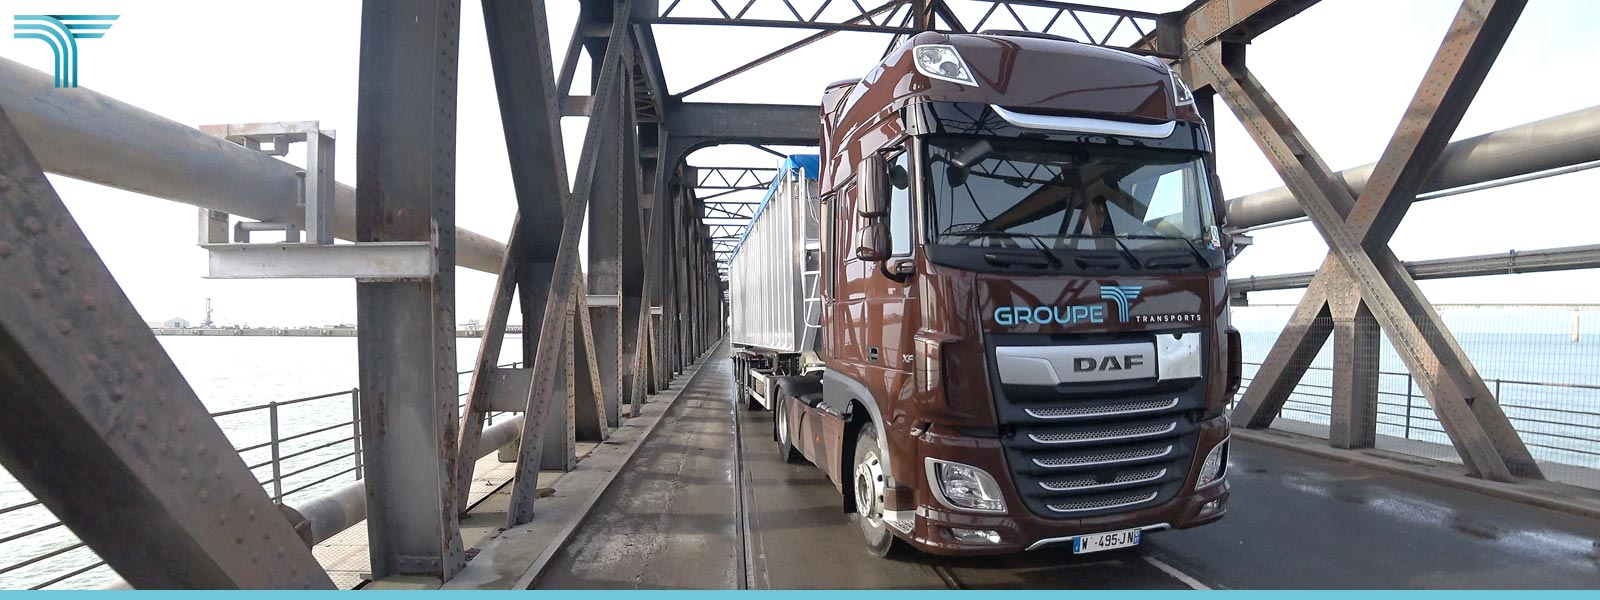 Acquisition de 12 véhicules DAF XF Super Space Cab 530 ch